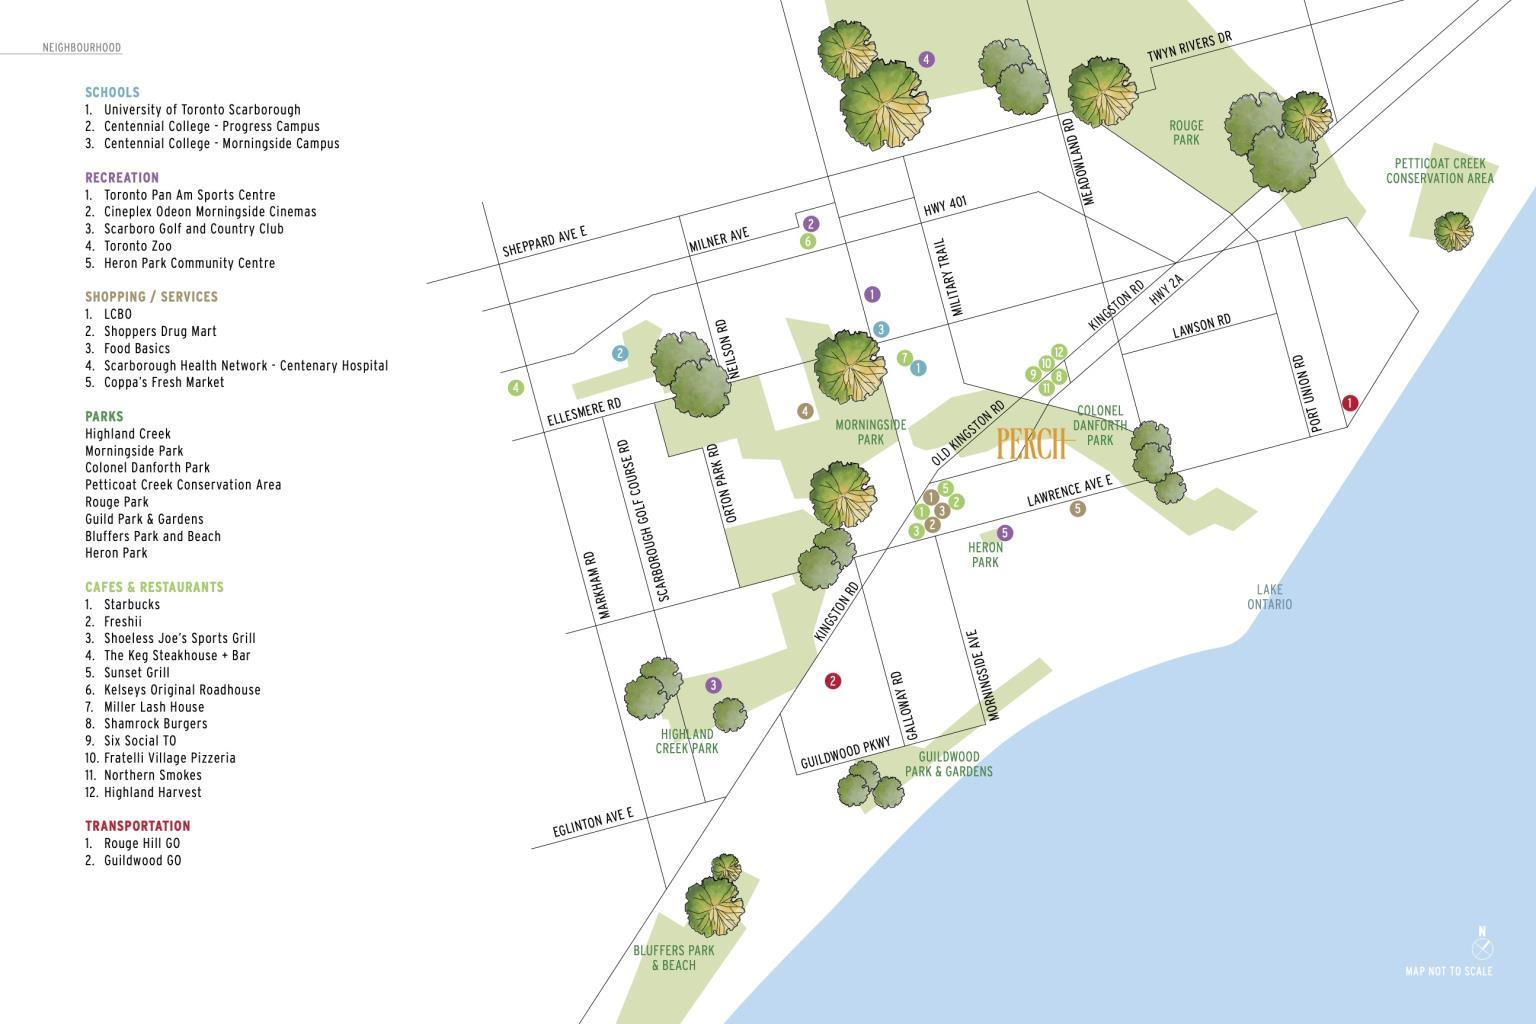 Perch condos site plan and map